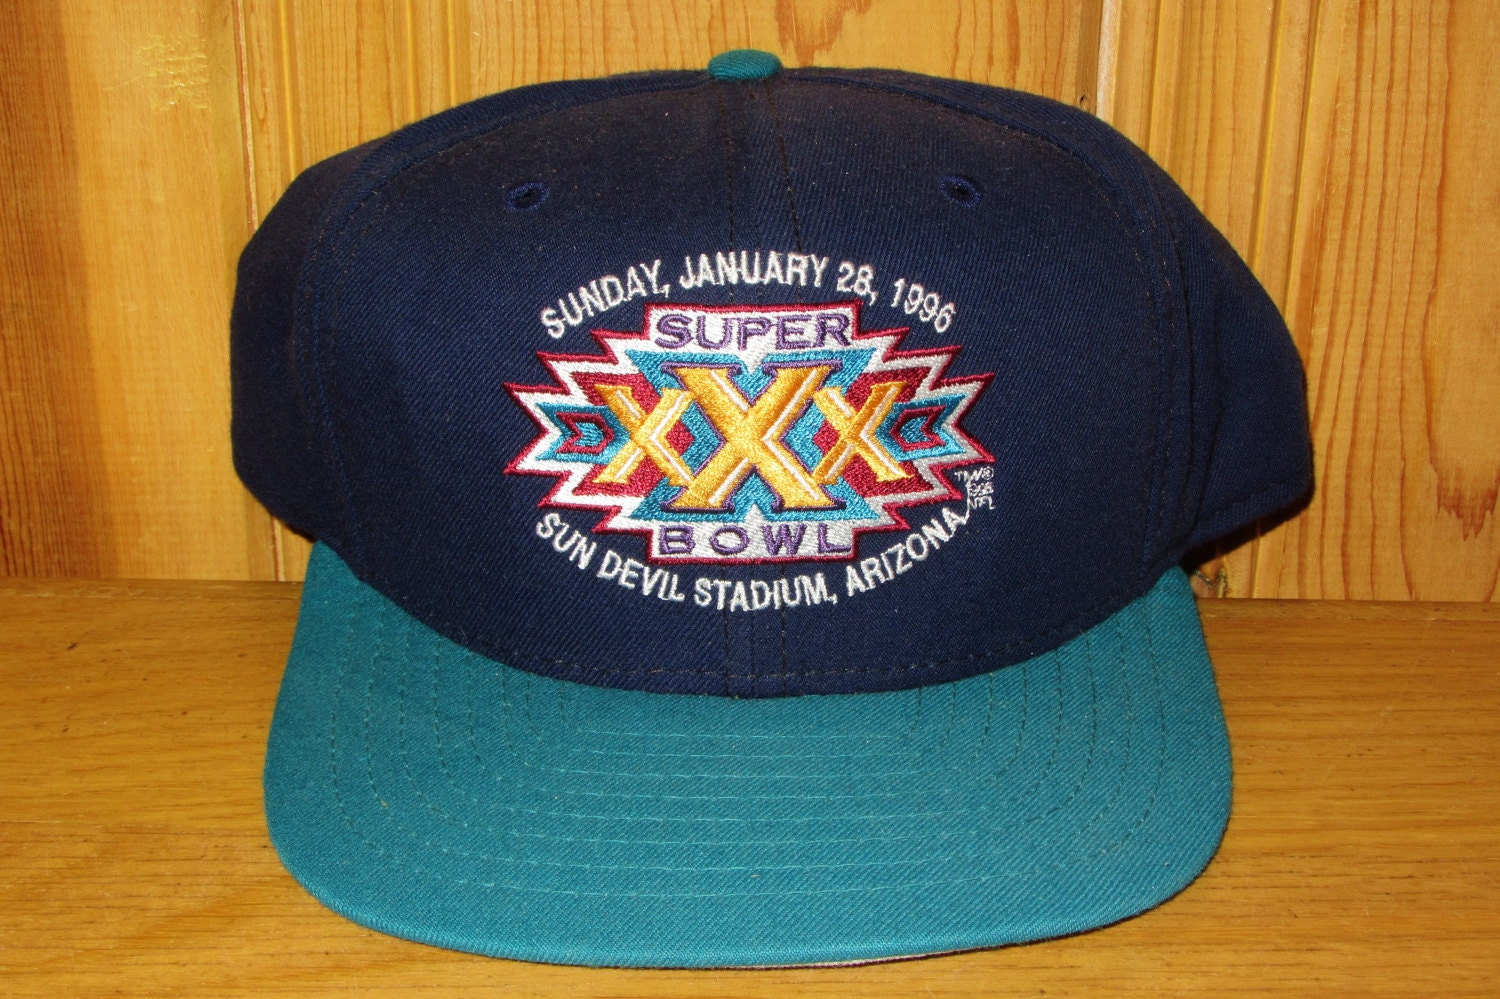 f04e4fe8a99 Super Bowl XXX Official Licensed NFL New Era Snapback Hat Low Profile  Vintage 90s Cap Sunday Jan 28 1996 Dallas Cowboys Pittsburgh Steelers